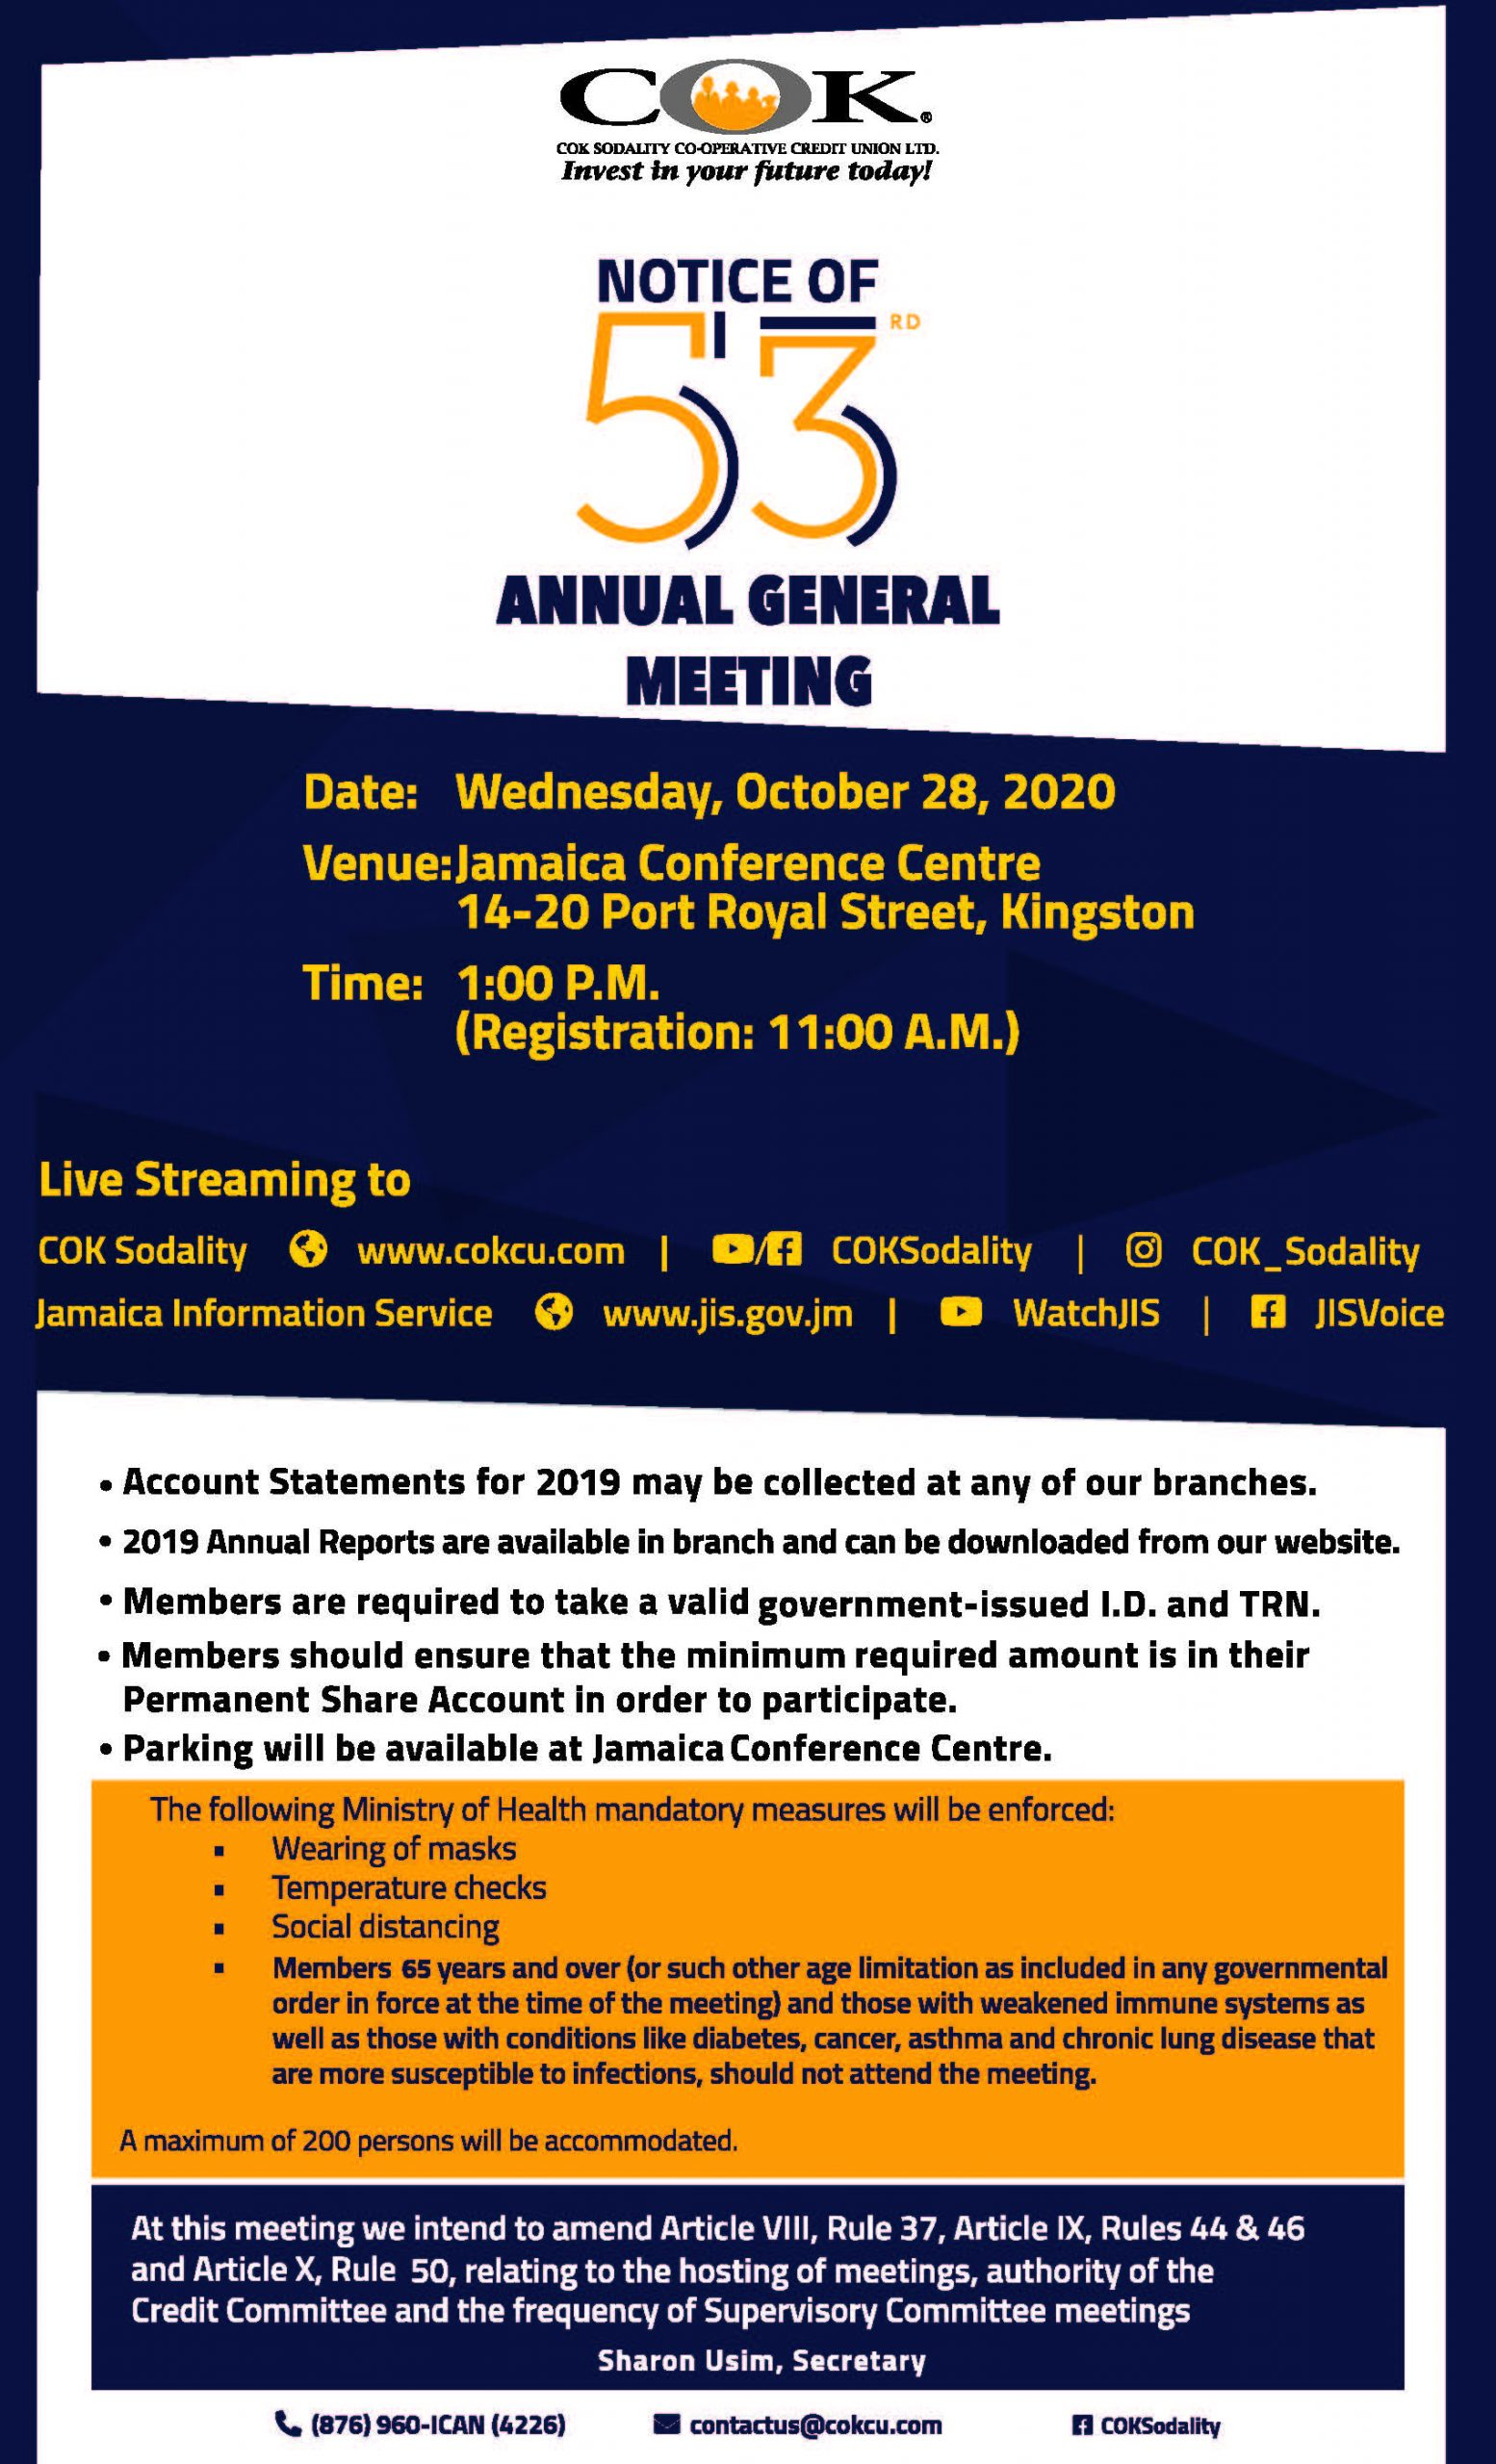 Annul General Meeting Notice